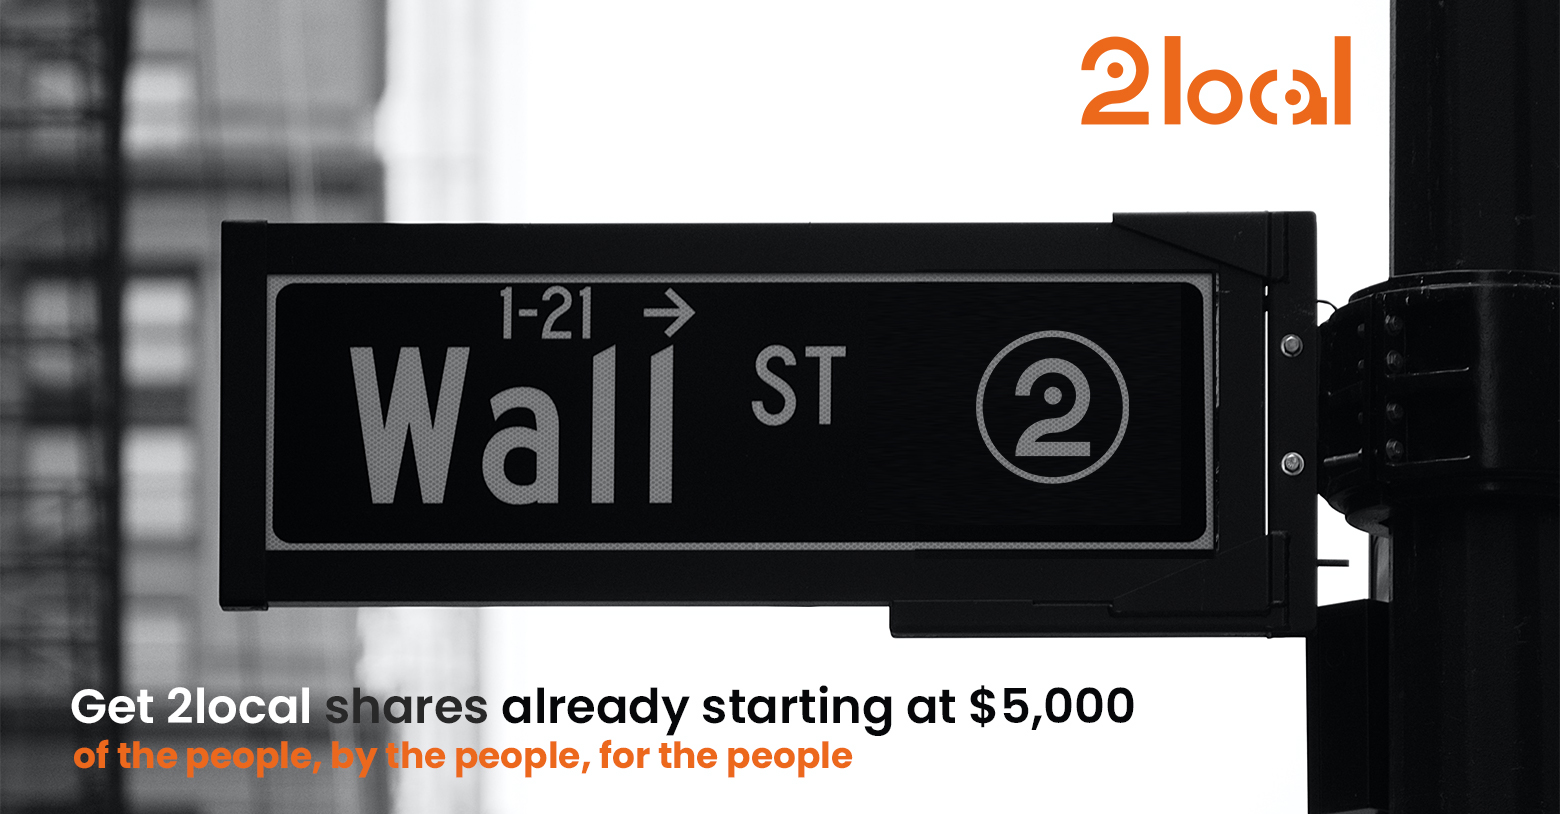 2local is selling limited shares of 2local, starting at $5,000